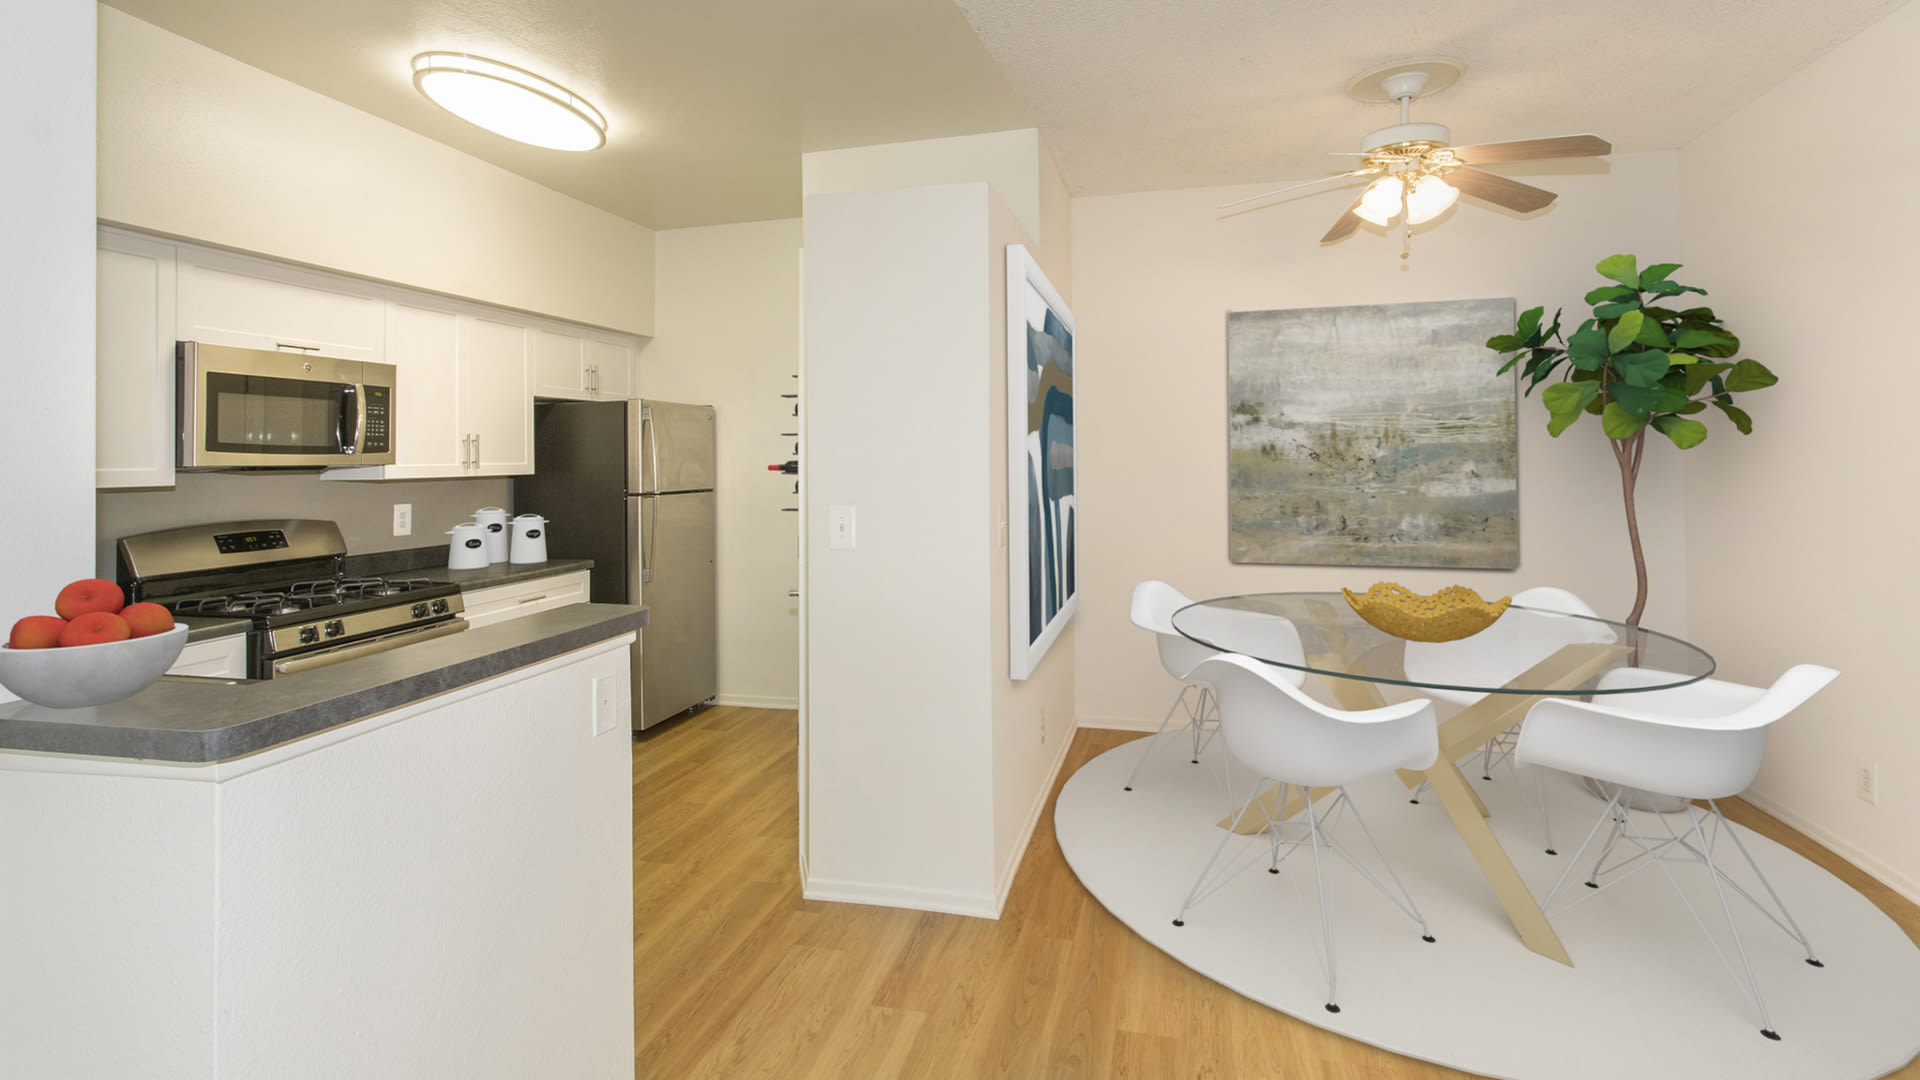 Portofino Valencia Apartments - Dining Room and Kitchen with Stainless Steel Appliances